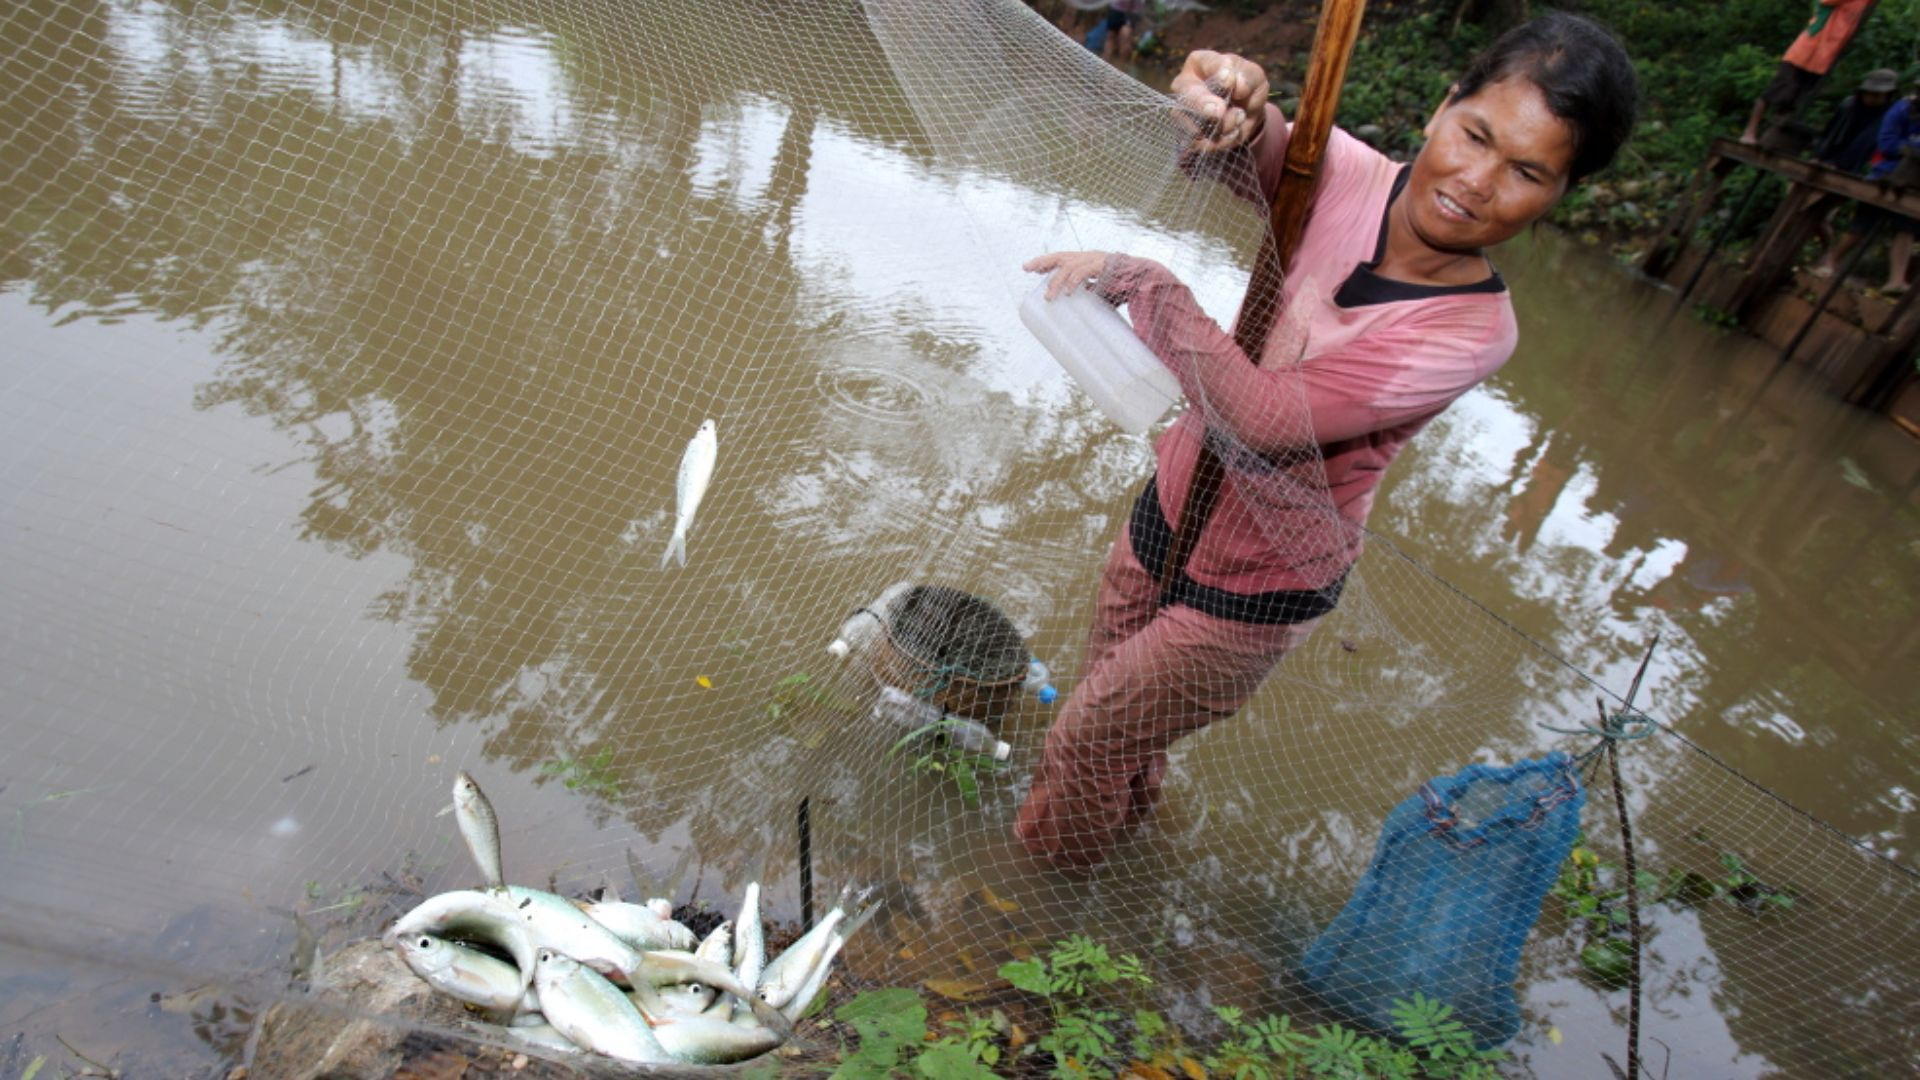 Australian researchers build 'ladders' in waterways to save Asia's fish